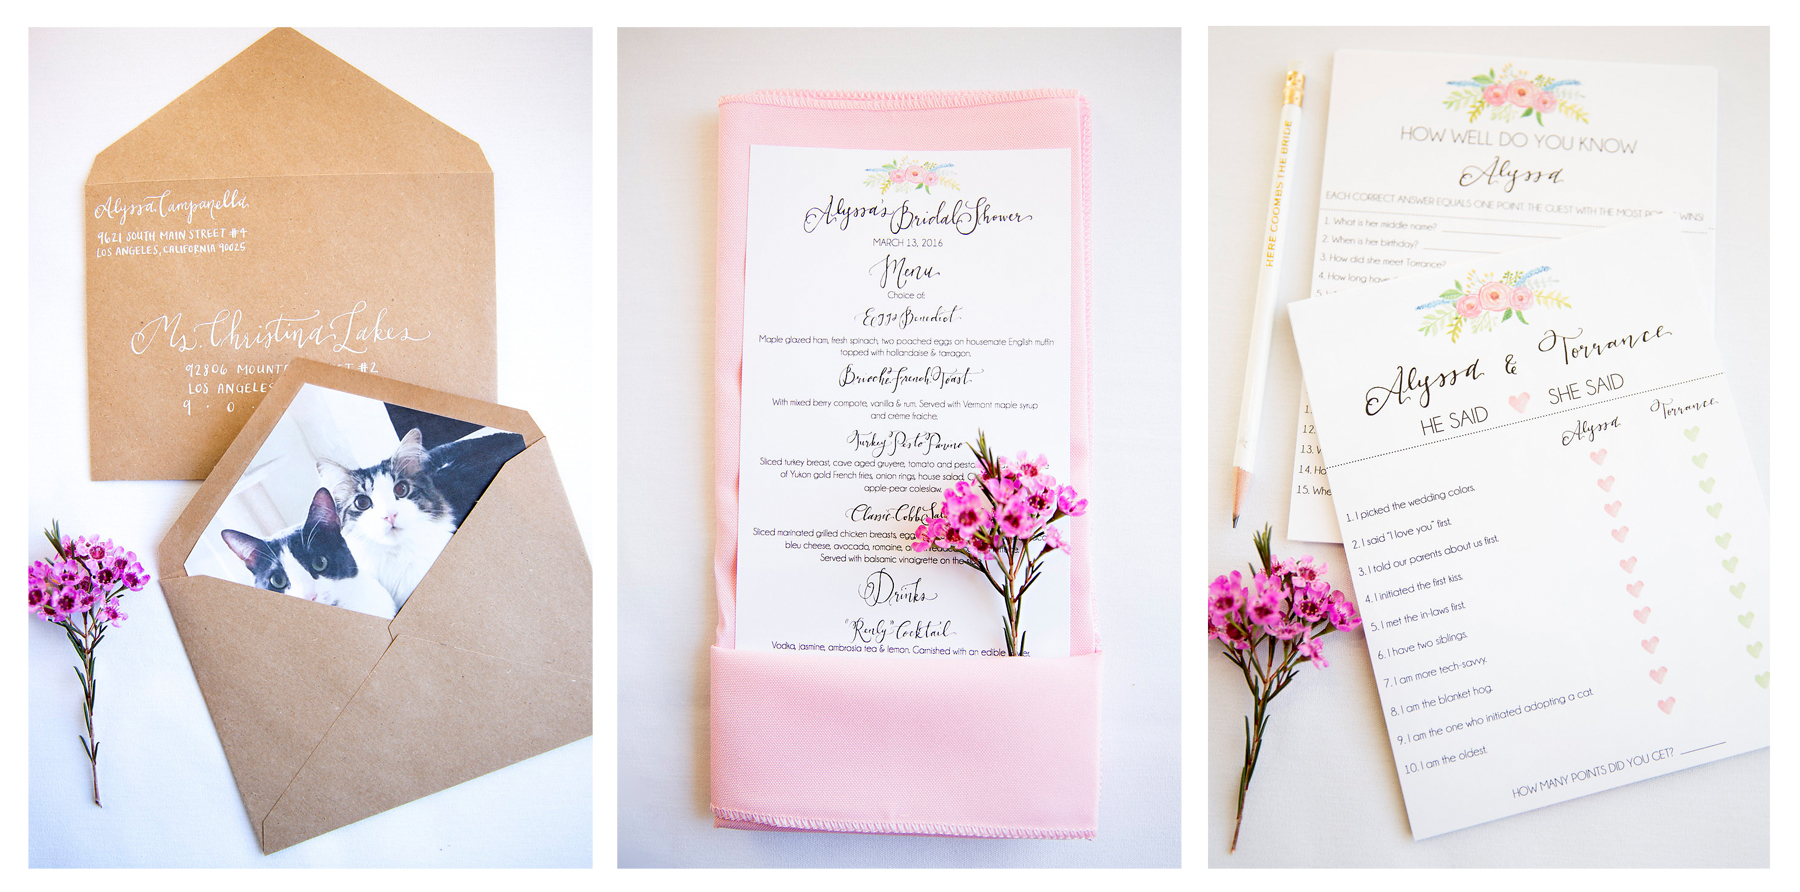 http://www.pirouettepaper.com/blog-post/cat-themed-bridal-shower | Pirouette Paper Company | Cat Themed Bridal Shower | Celebration and Wedding Calligraphy and Wedding Invitations